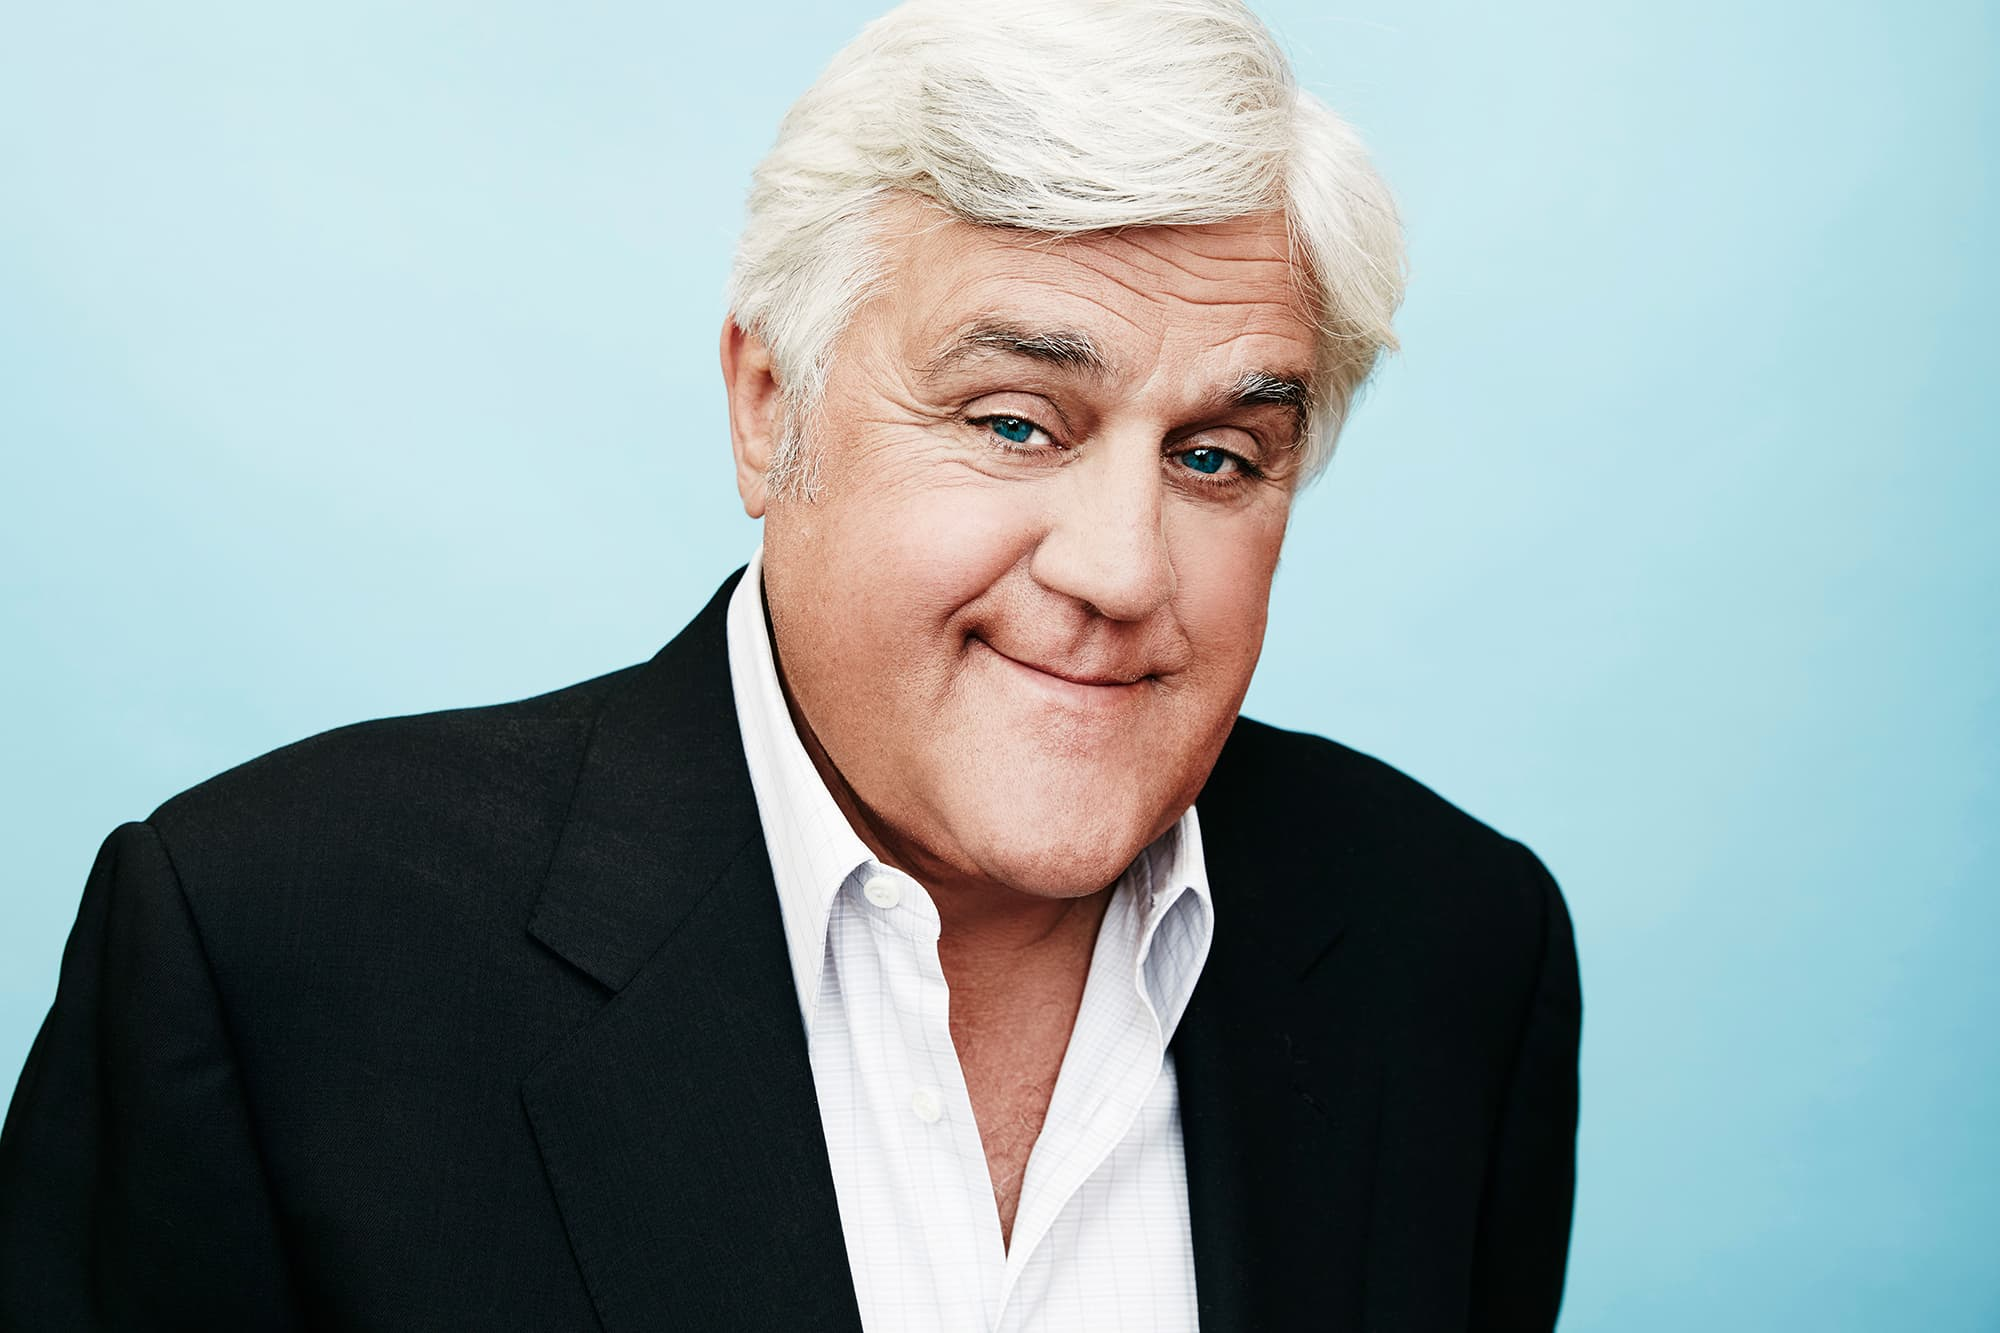 What Jay Leno, Tony Hawk and 8 other successful millionaires wish they knew in their 20s